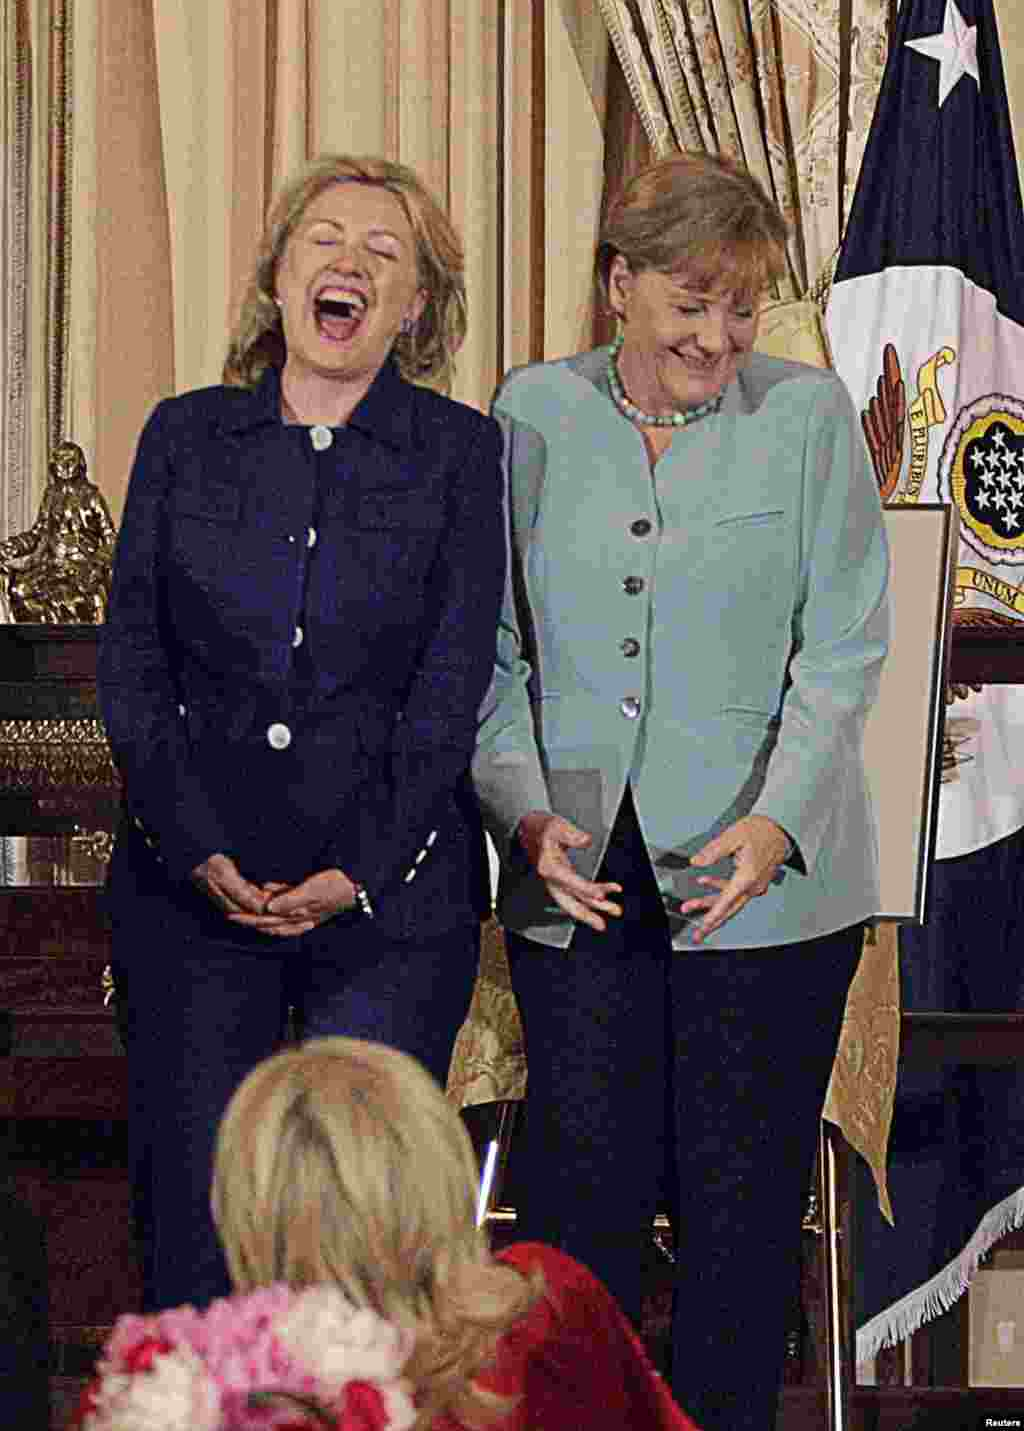 German Chancellor Angela Merkel (right) laughs with Secretary of State Clinton during a luncheon held in Merkel's honor at the State Department on June 7, 2011.